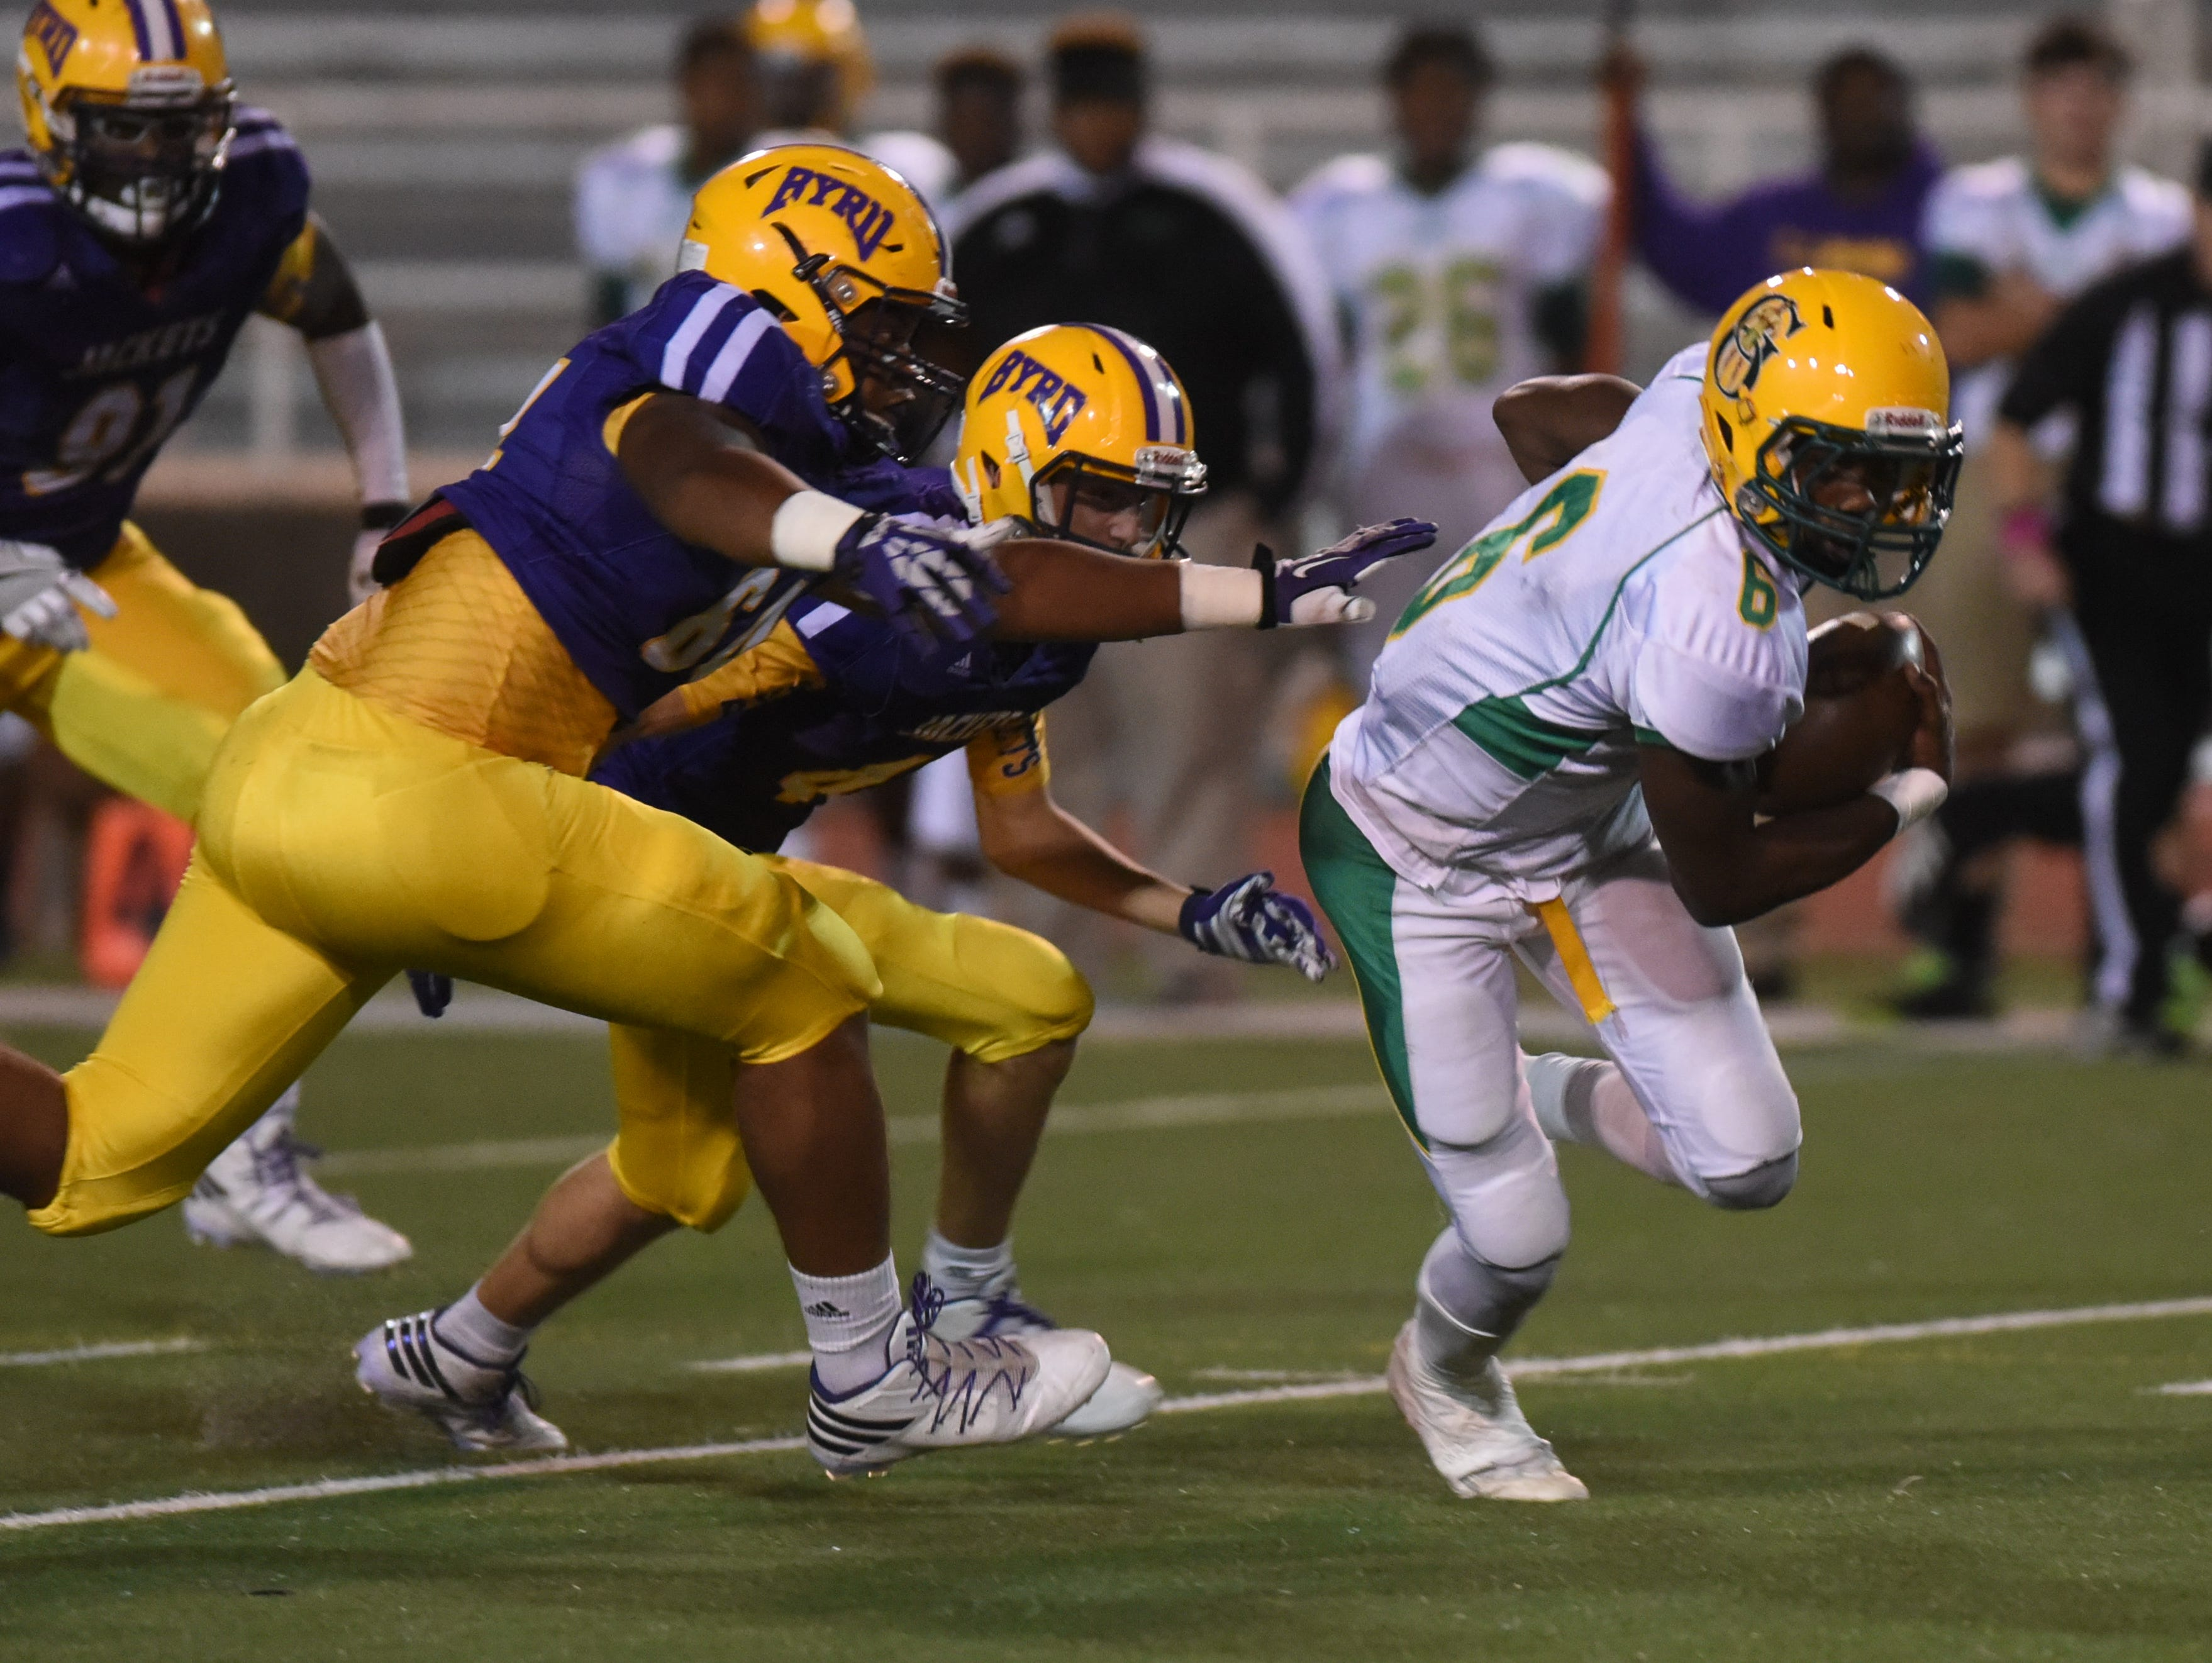 C.E. Byrd chases down Zelanz French for a loss after he miss handles the ball behind the line of scrimmage.